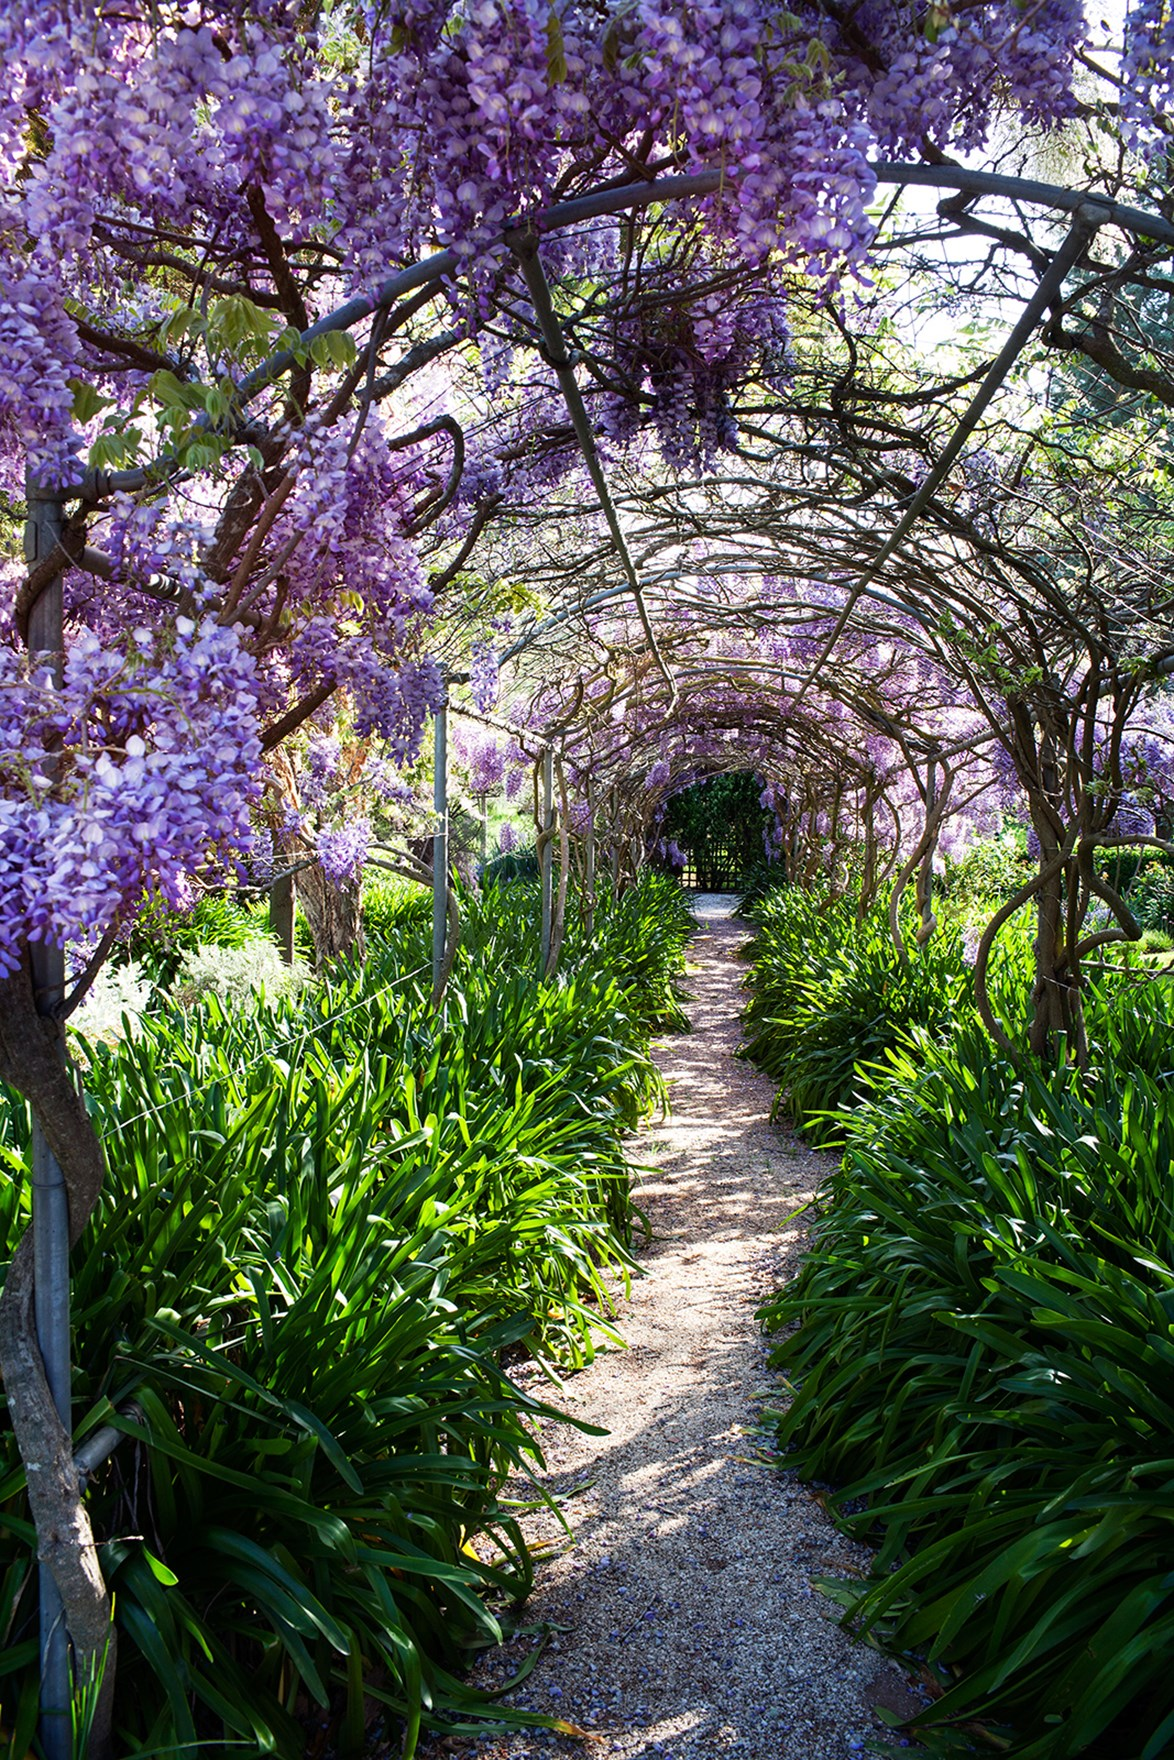 A walkway covered in the perfumed tendrils of wisteria.